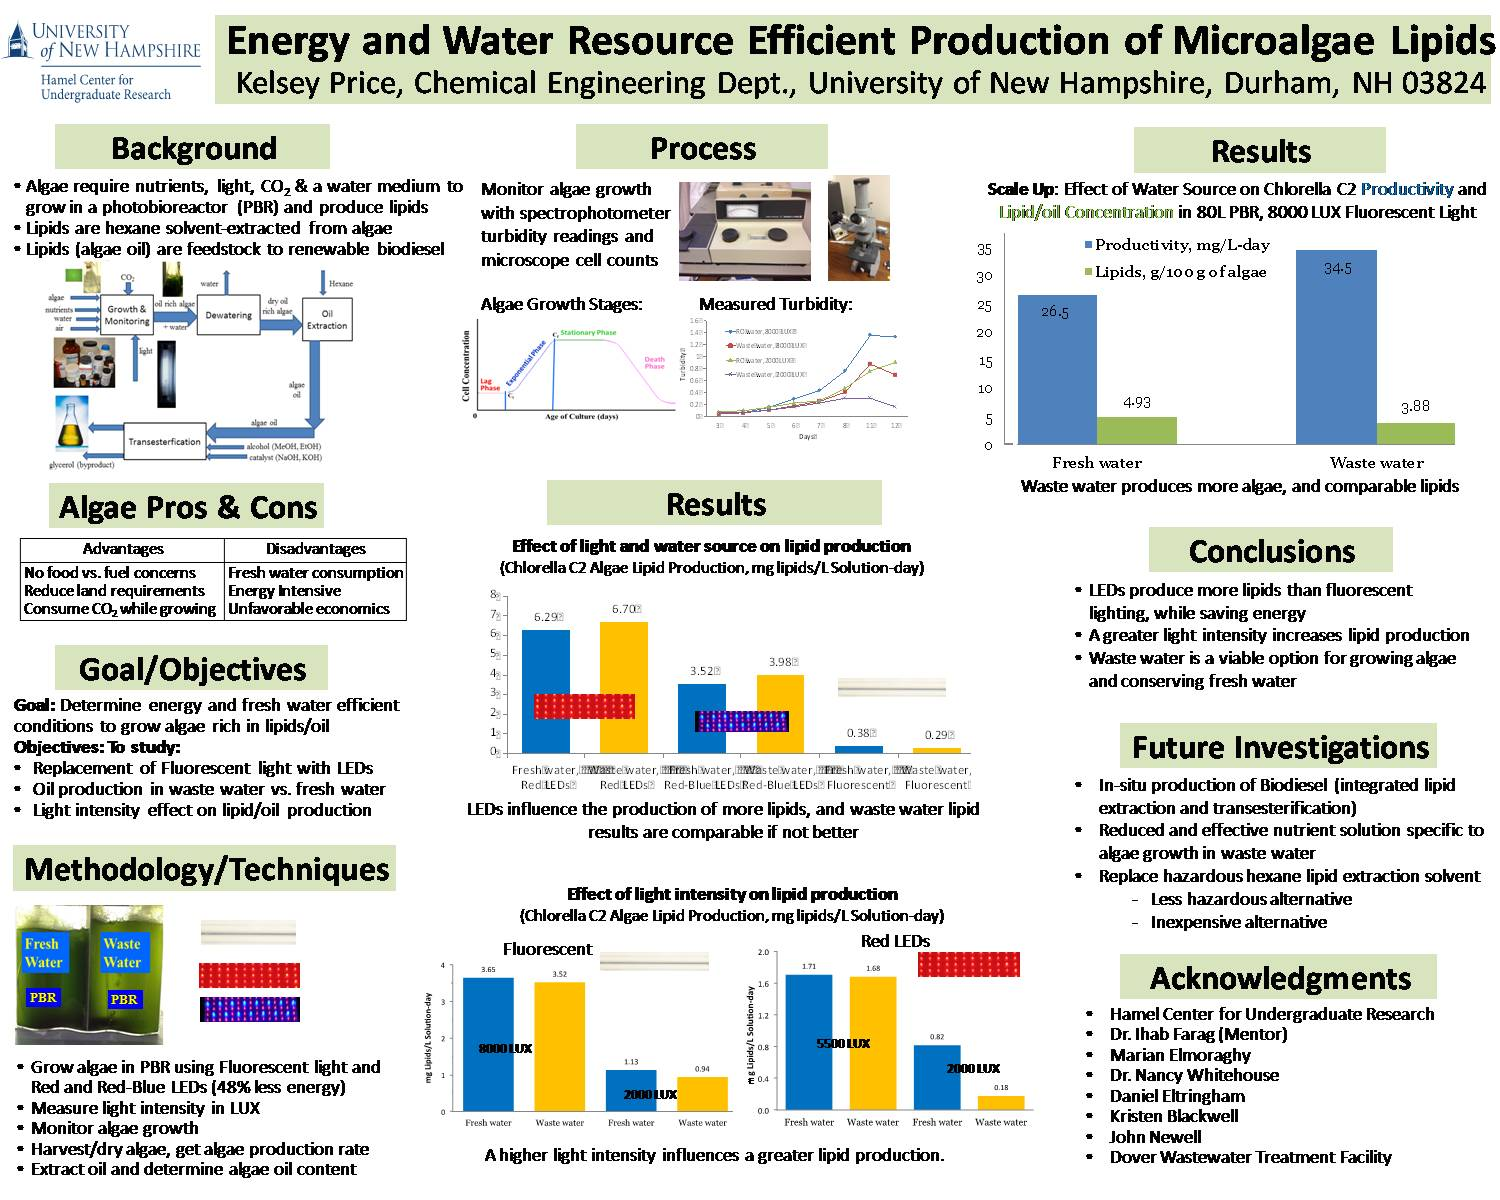 Energy And Water Resource Efficient Production Of Microalgae Lipids  by klc92